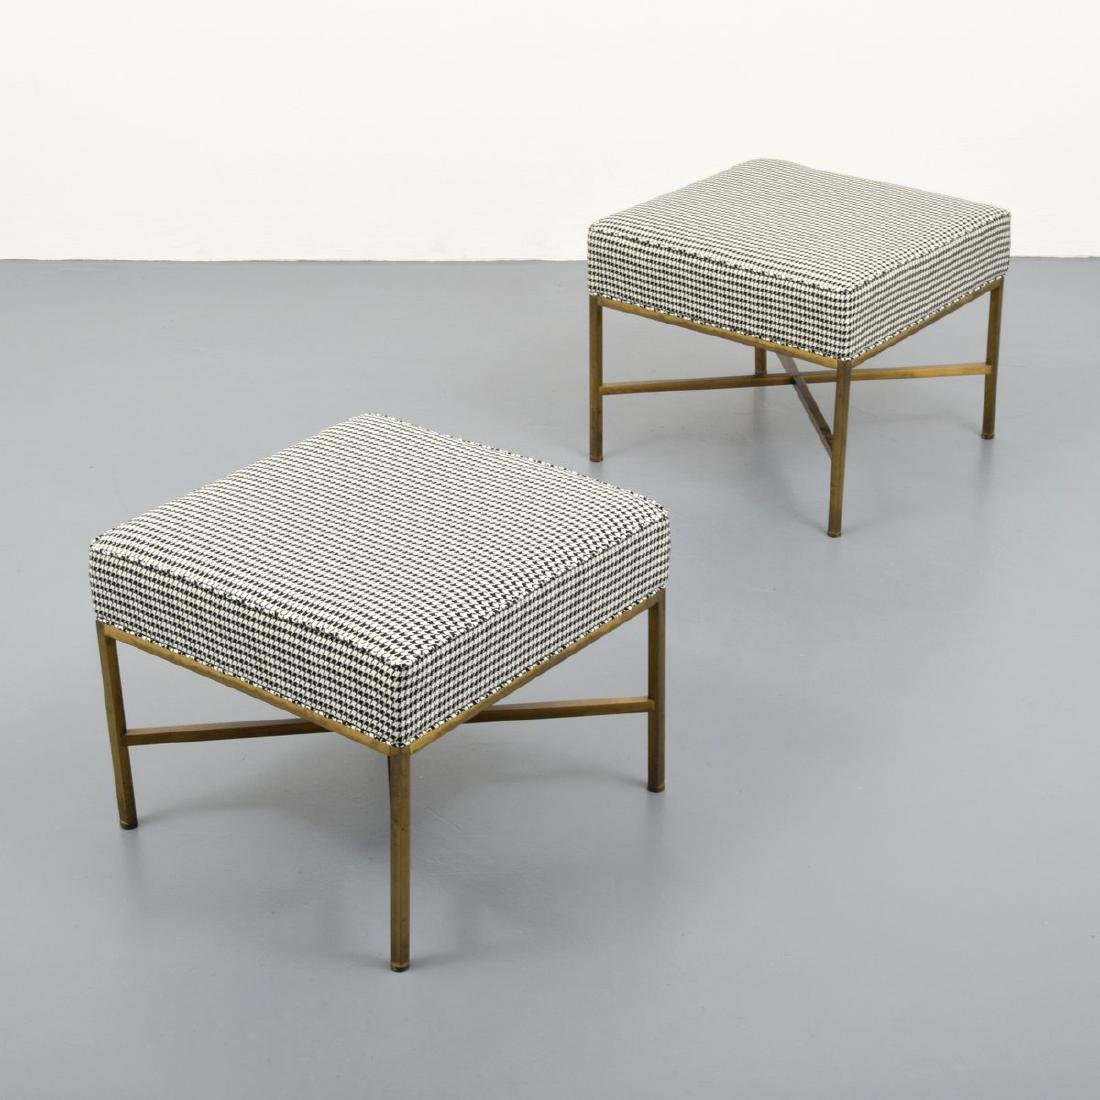 Pair of Stools Attributed to Paul McCobb - 2